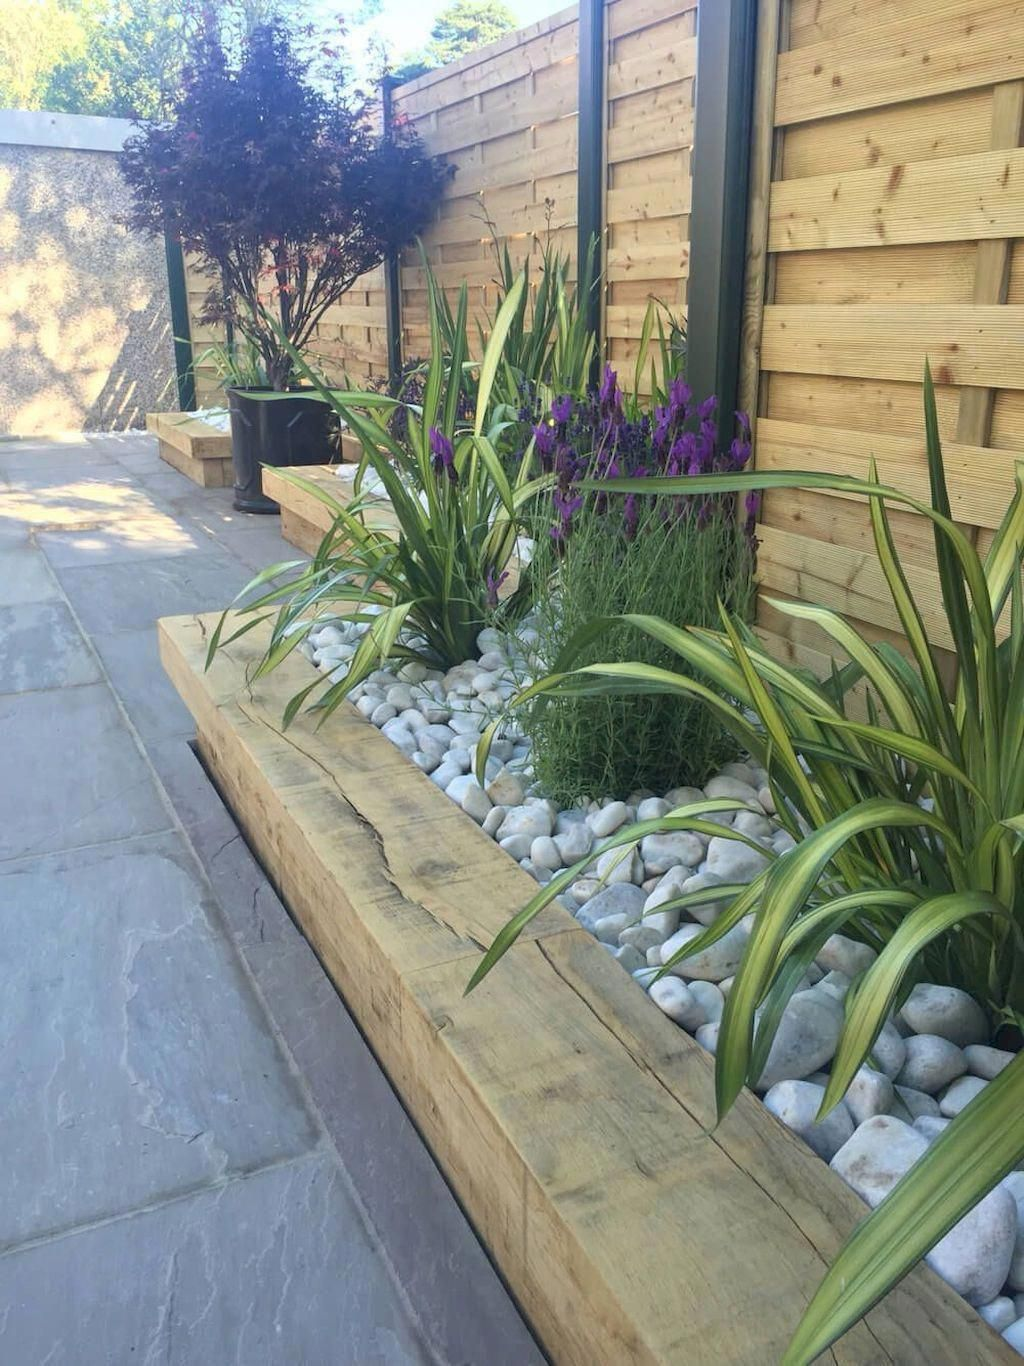 Landscaping ideas for the front yard better homes and gardens onbudget lowmaintenance small rock hydrangeas entryway get our best also garden design images in rh pinterest